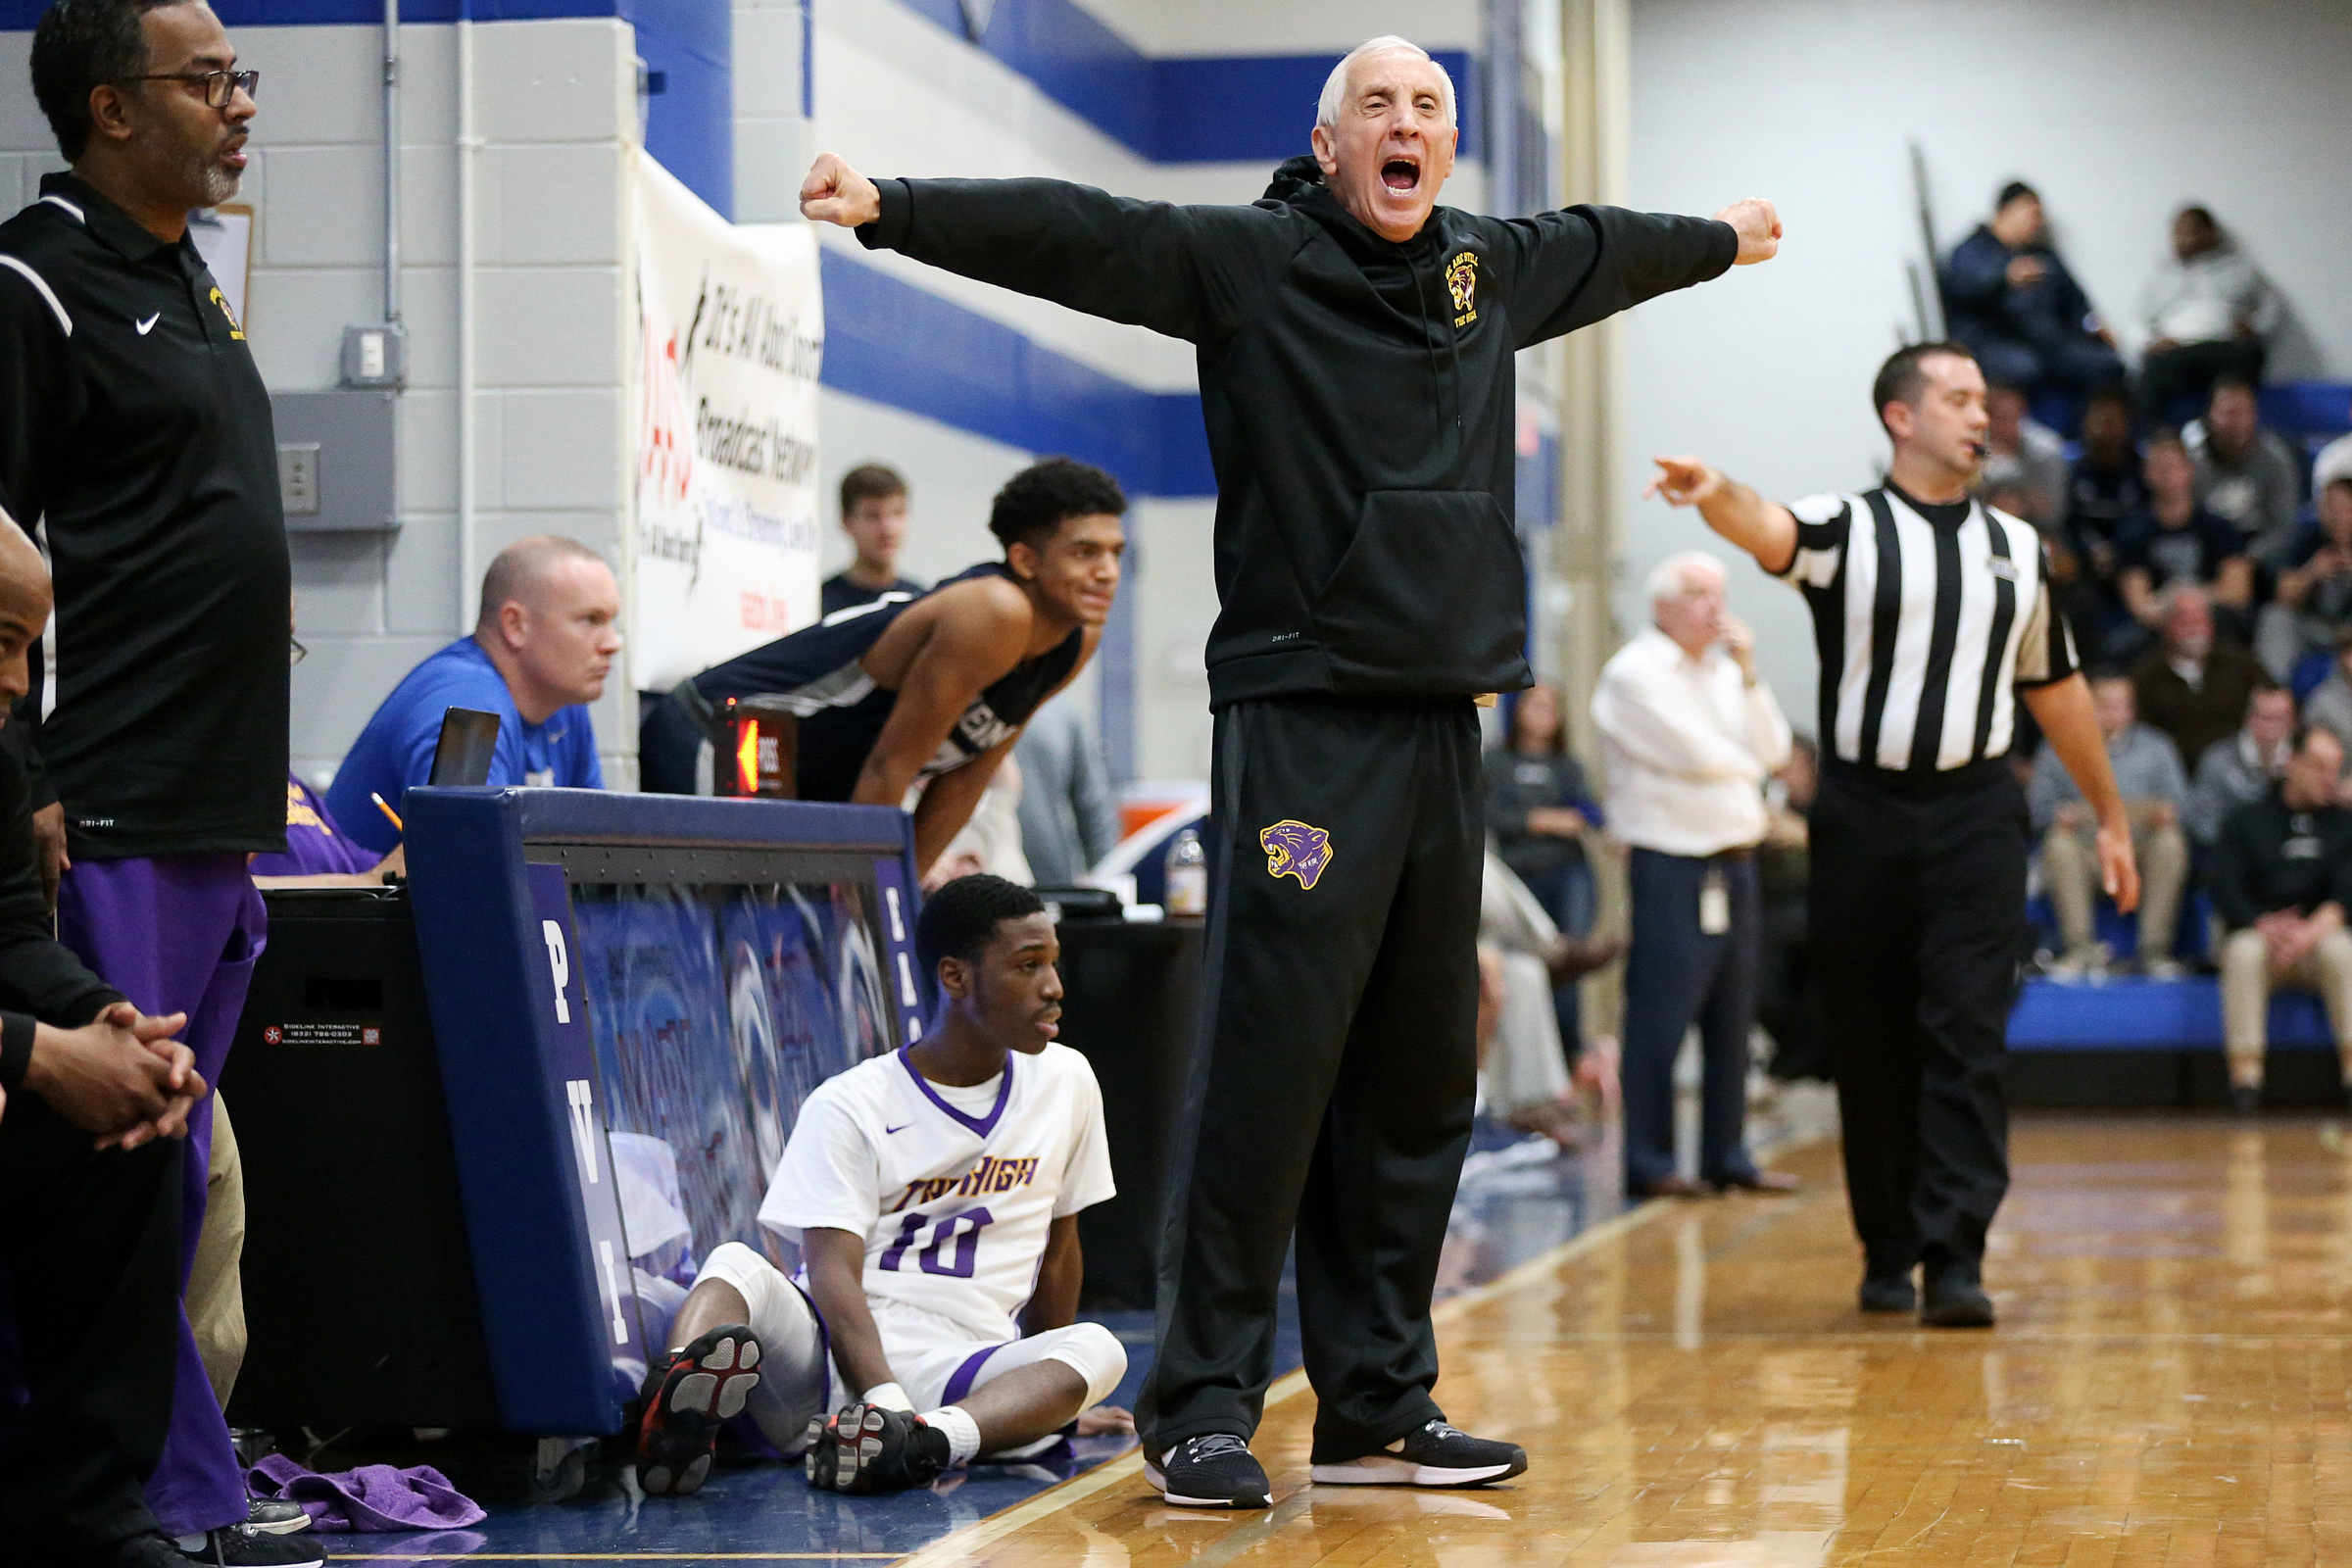 John Valore´s teams went 118-36 and won four South Jersey titles in five seasons at Camden.